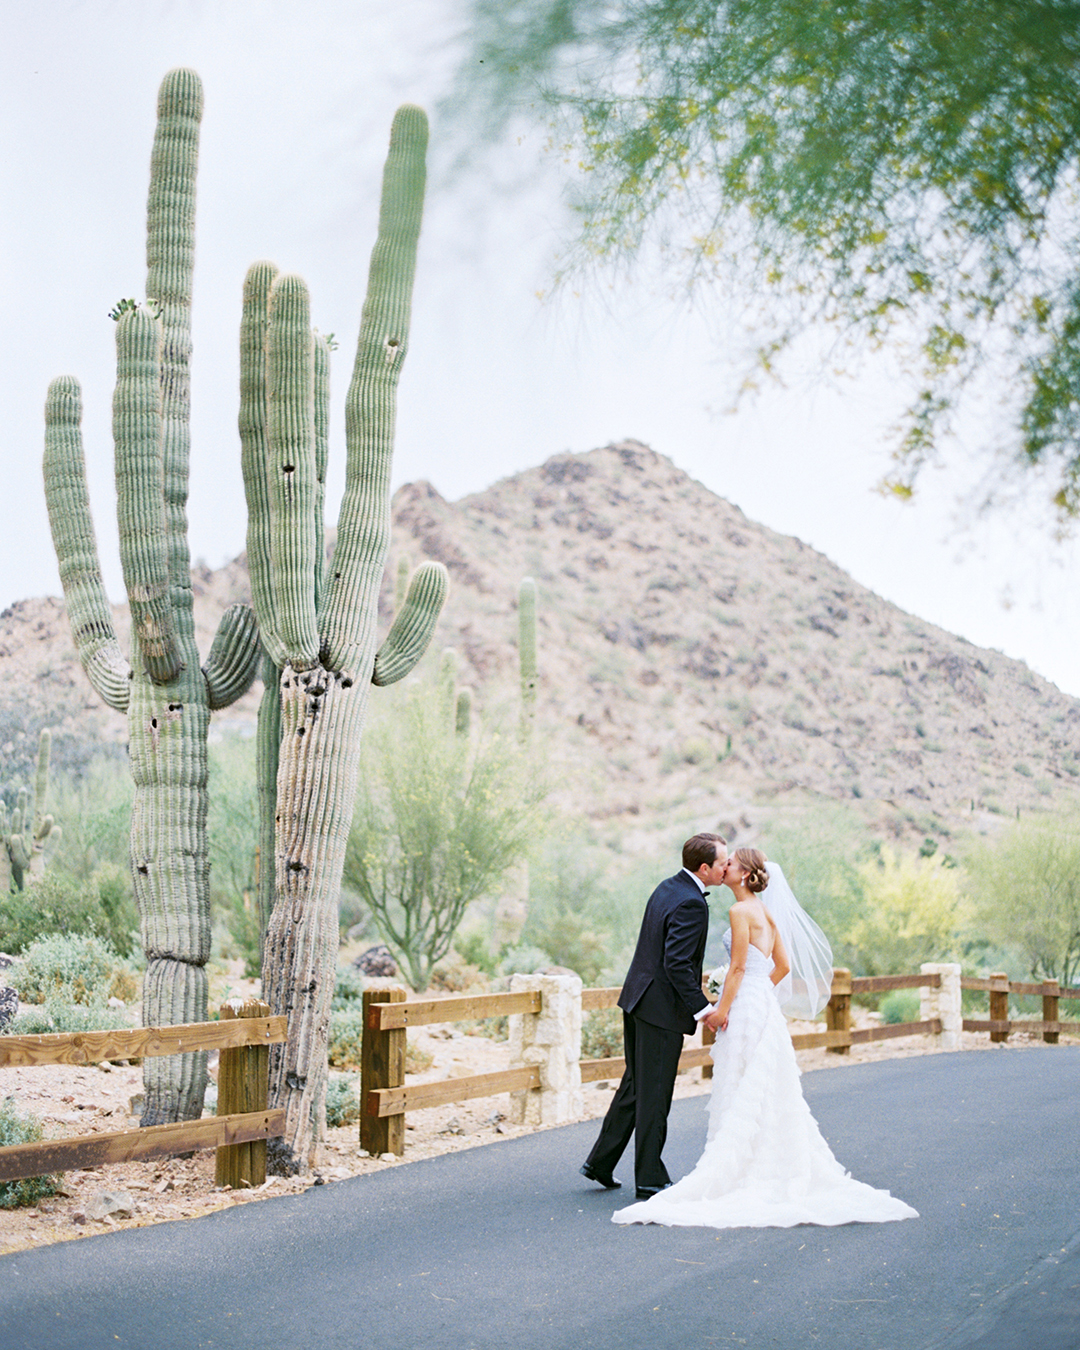 melissa_jill_contax645_fuji400_ashley_gain_weddings_lazaro_bridal_paradise_valley_arizona_photovisionprints.jpg